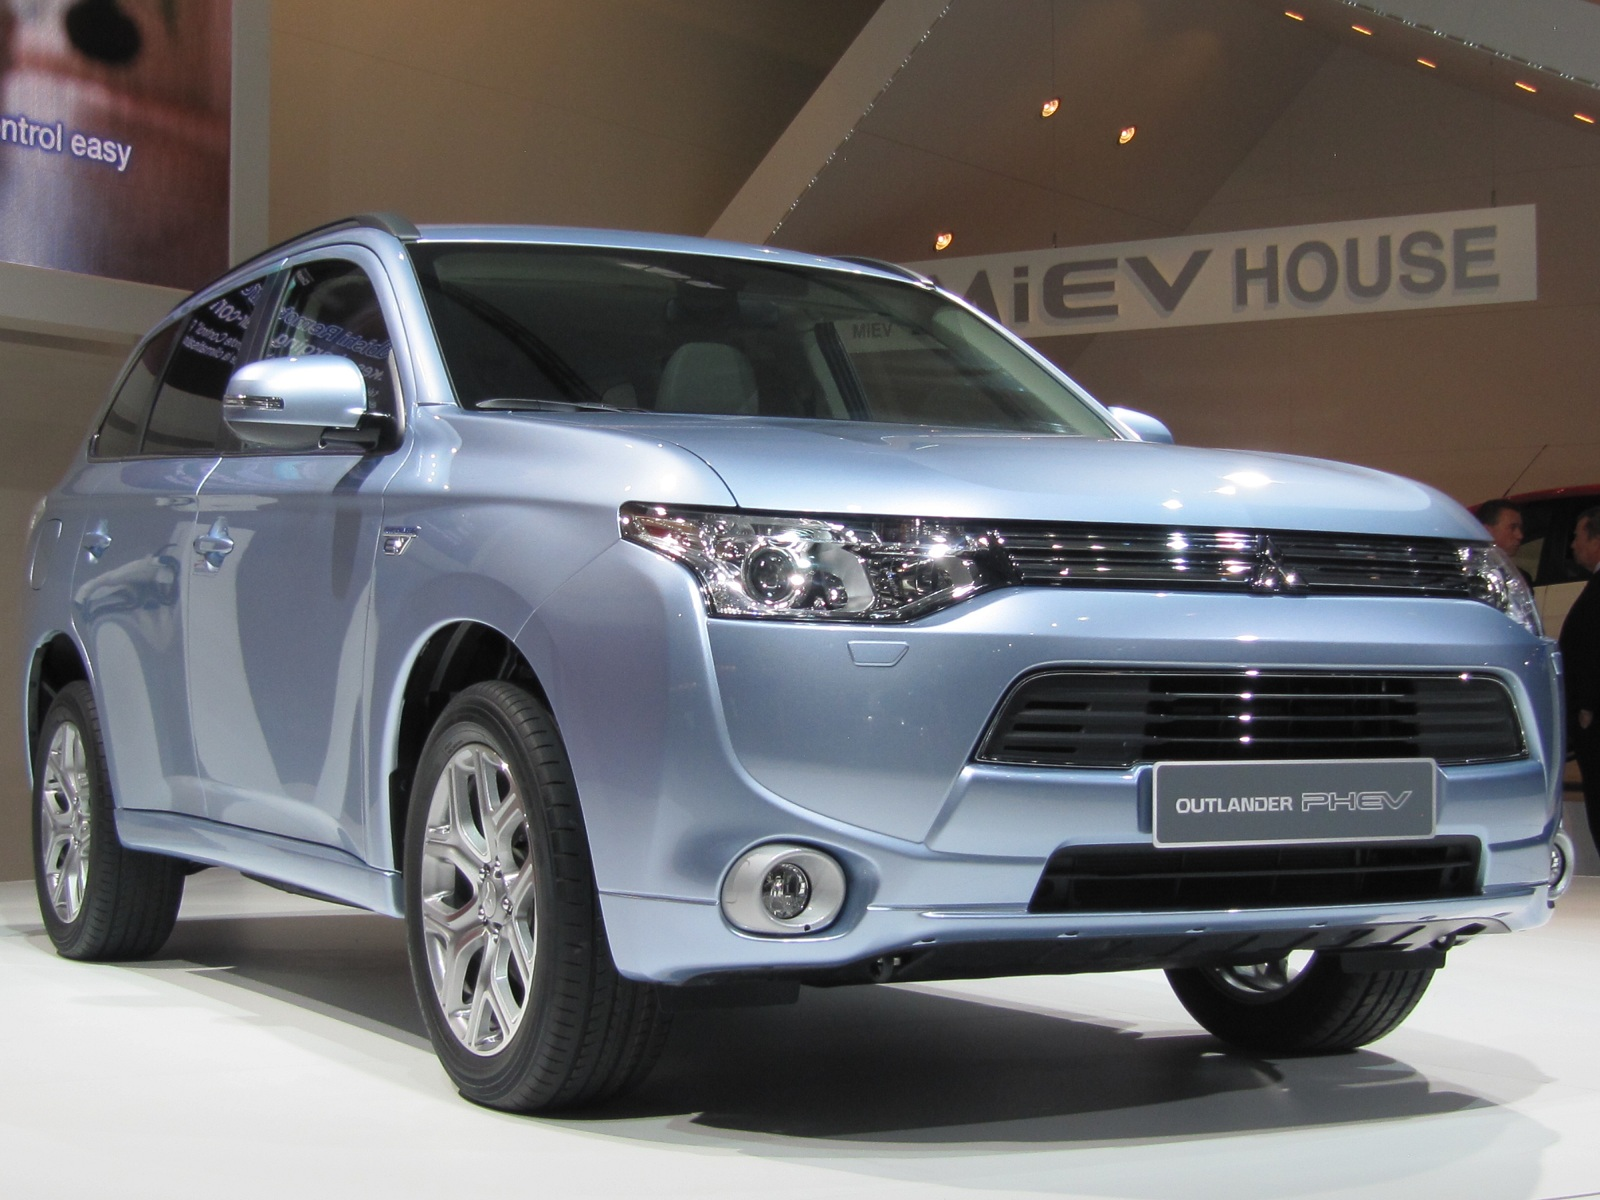 Best Uber Cars >> 2017 Mitsubishi Outlander Plug-In Hybrid: On Sale Late Summer, Now